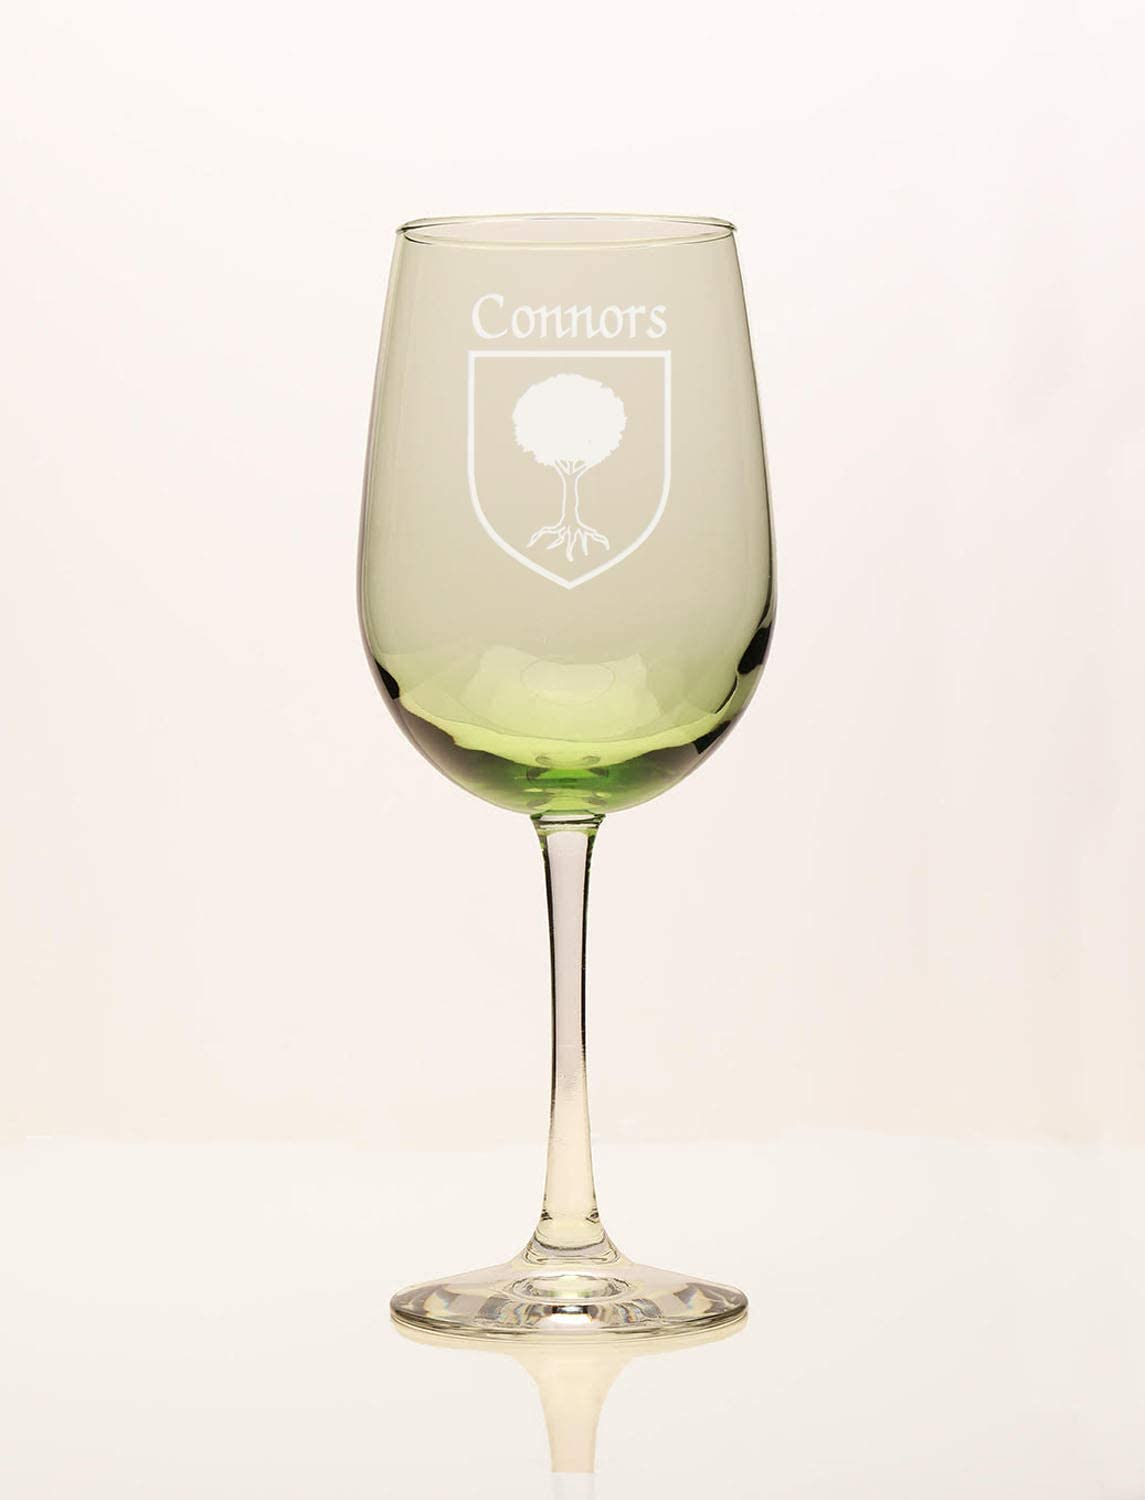 Connors Irish Coat of Popular popular Arms Wine Max 50% OFF Green Glass